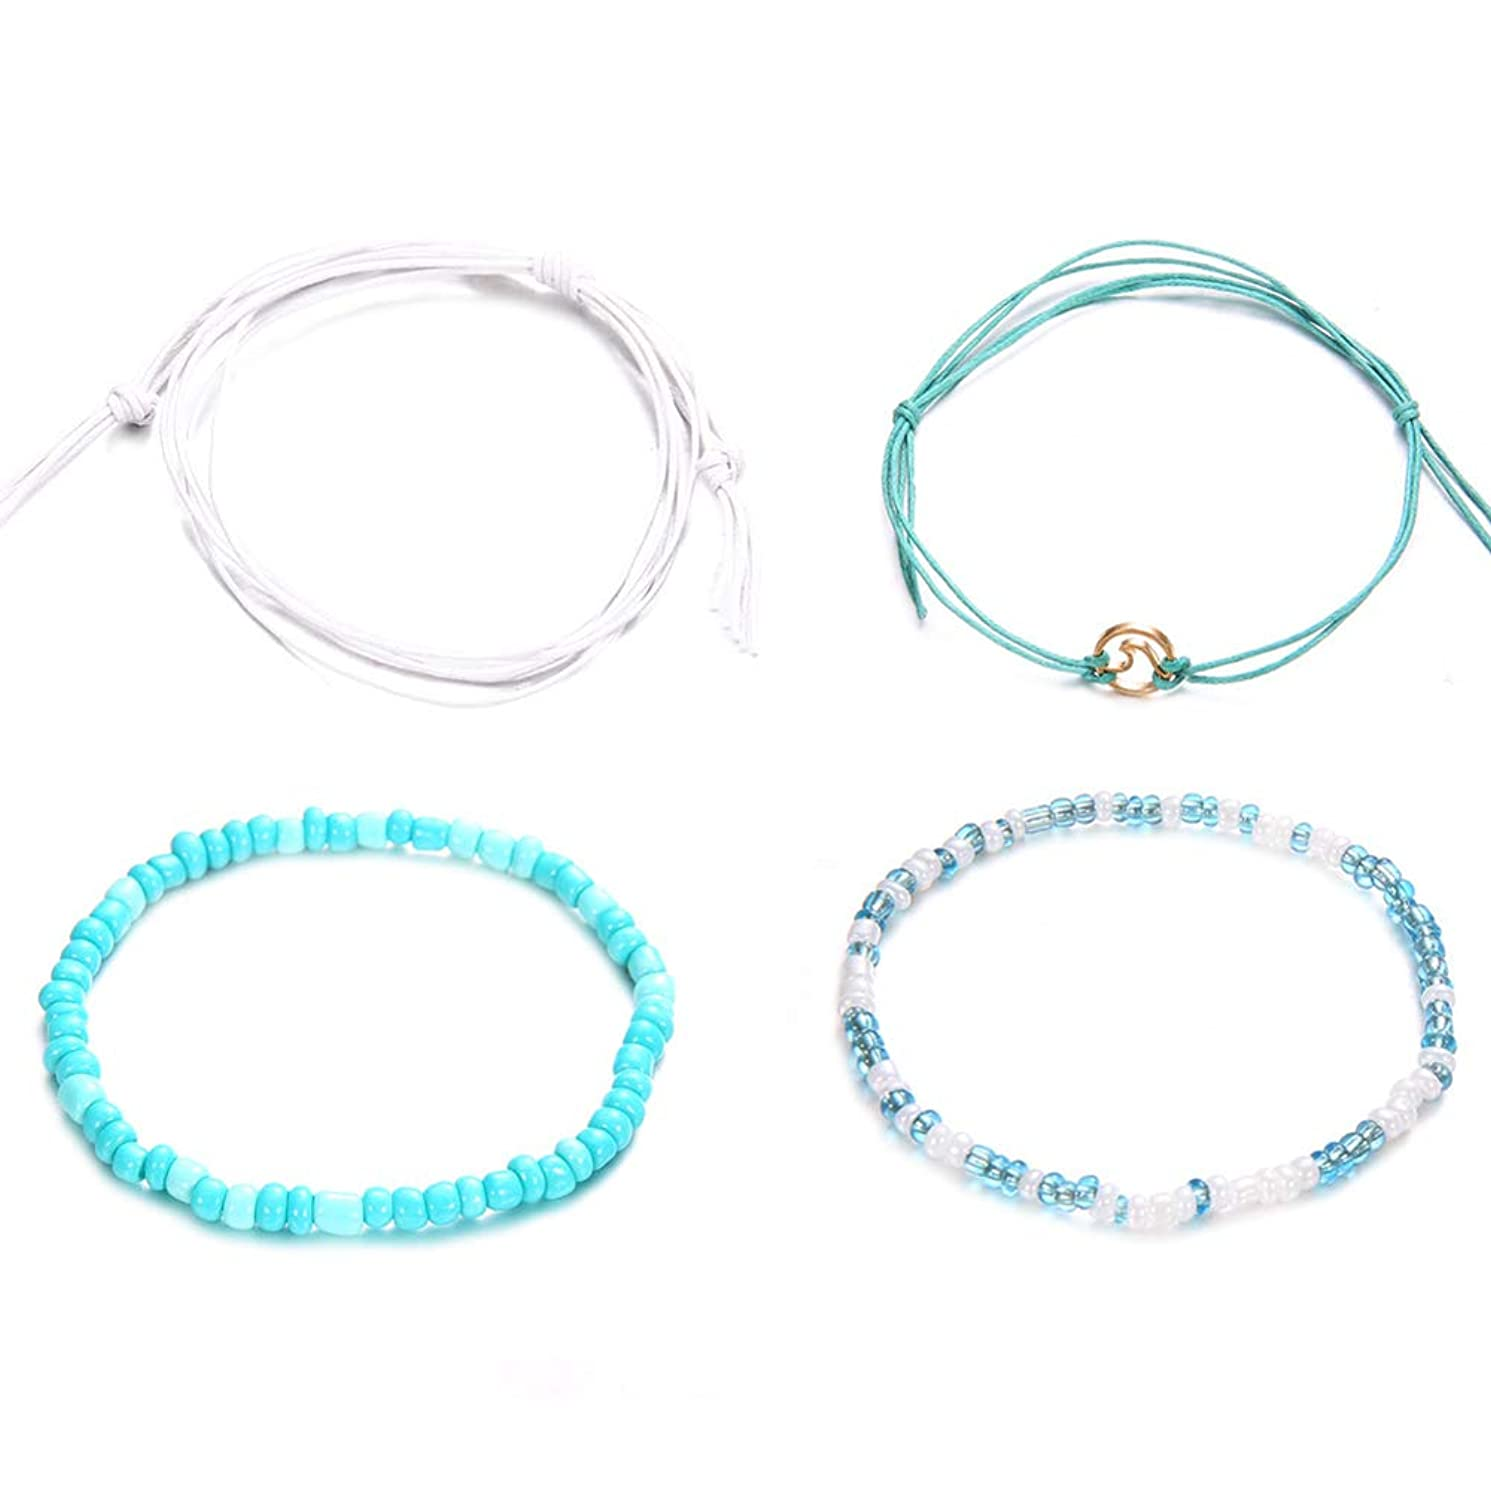 Anklets for Women,4Pcs Women Jewelry Decor Multi Layers Braid Rope Beach Foot Anklet Bracelet